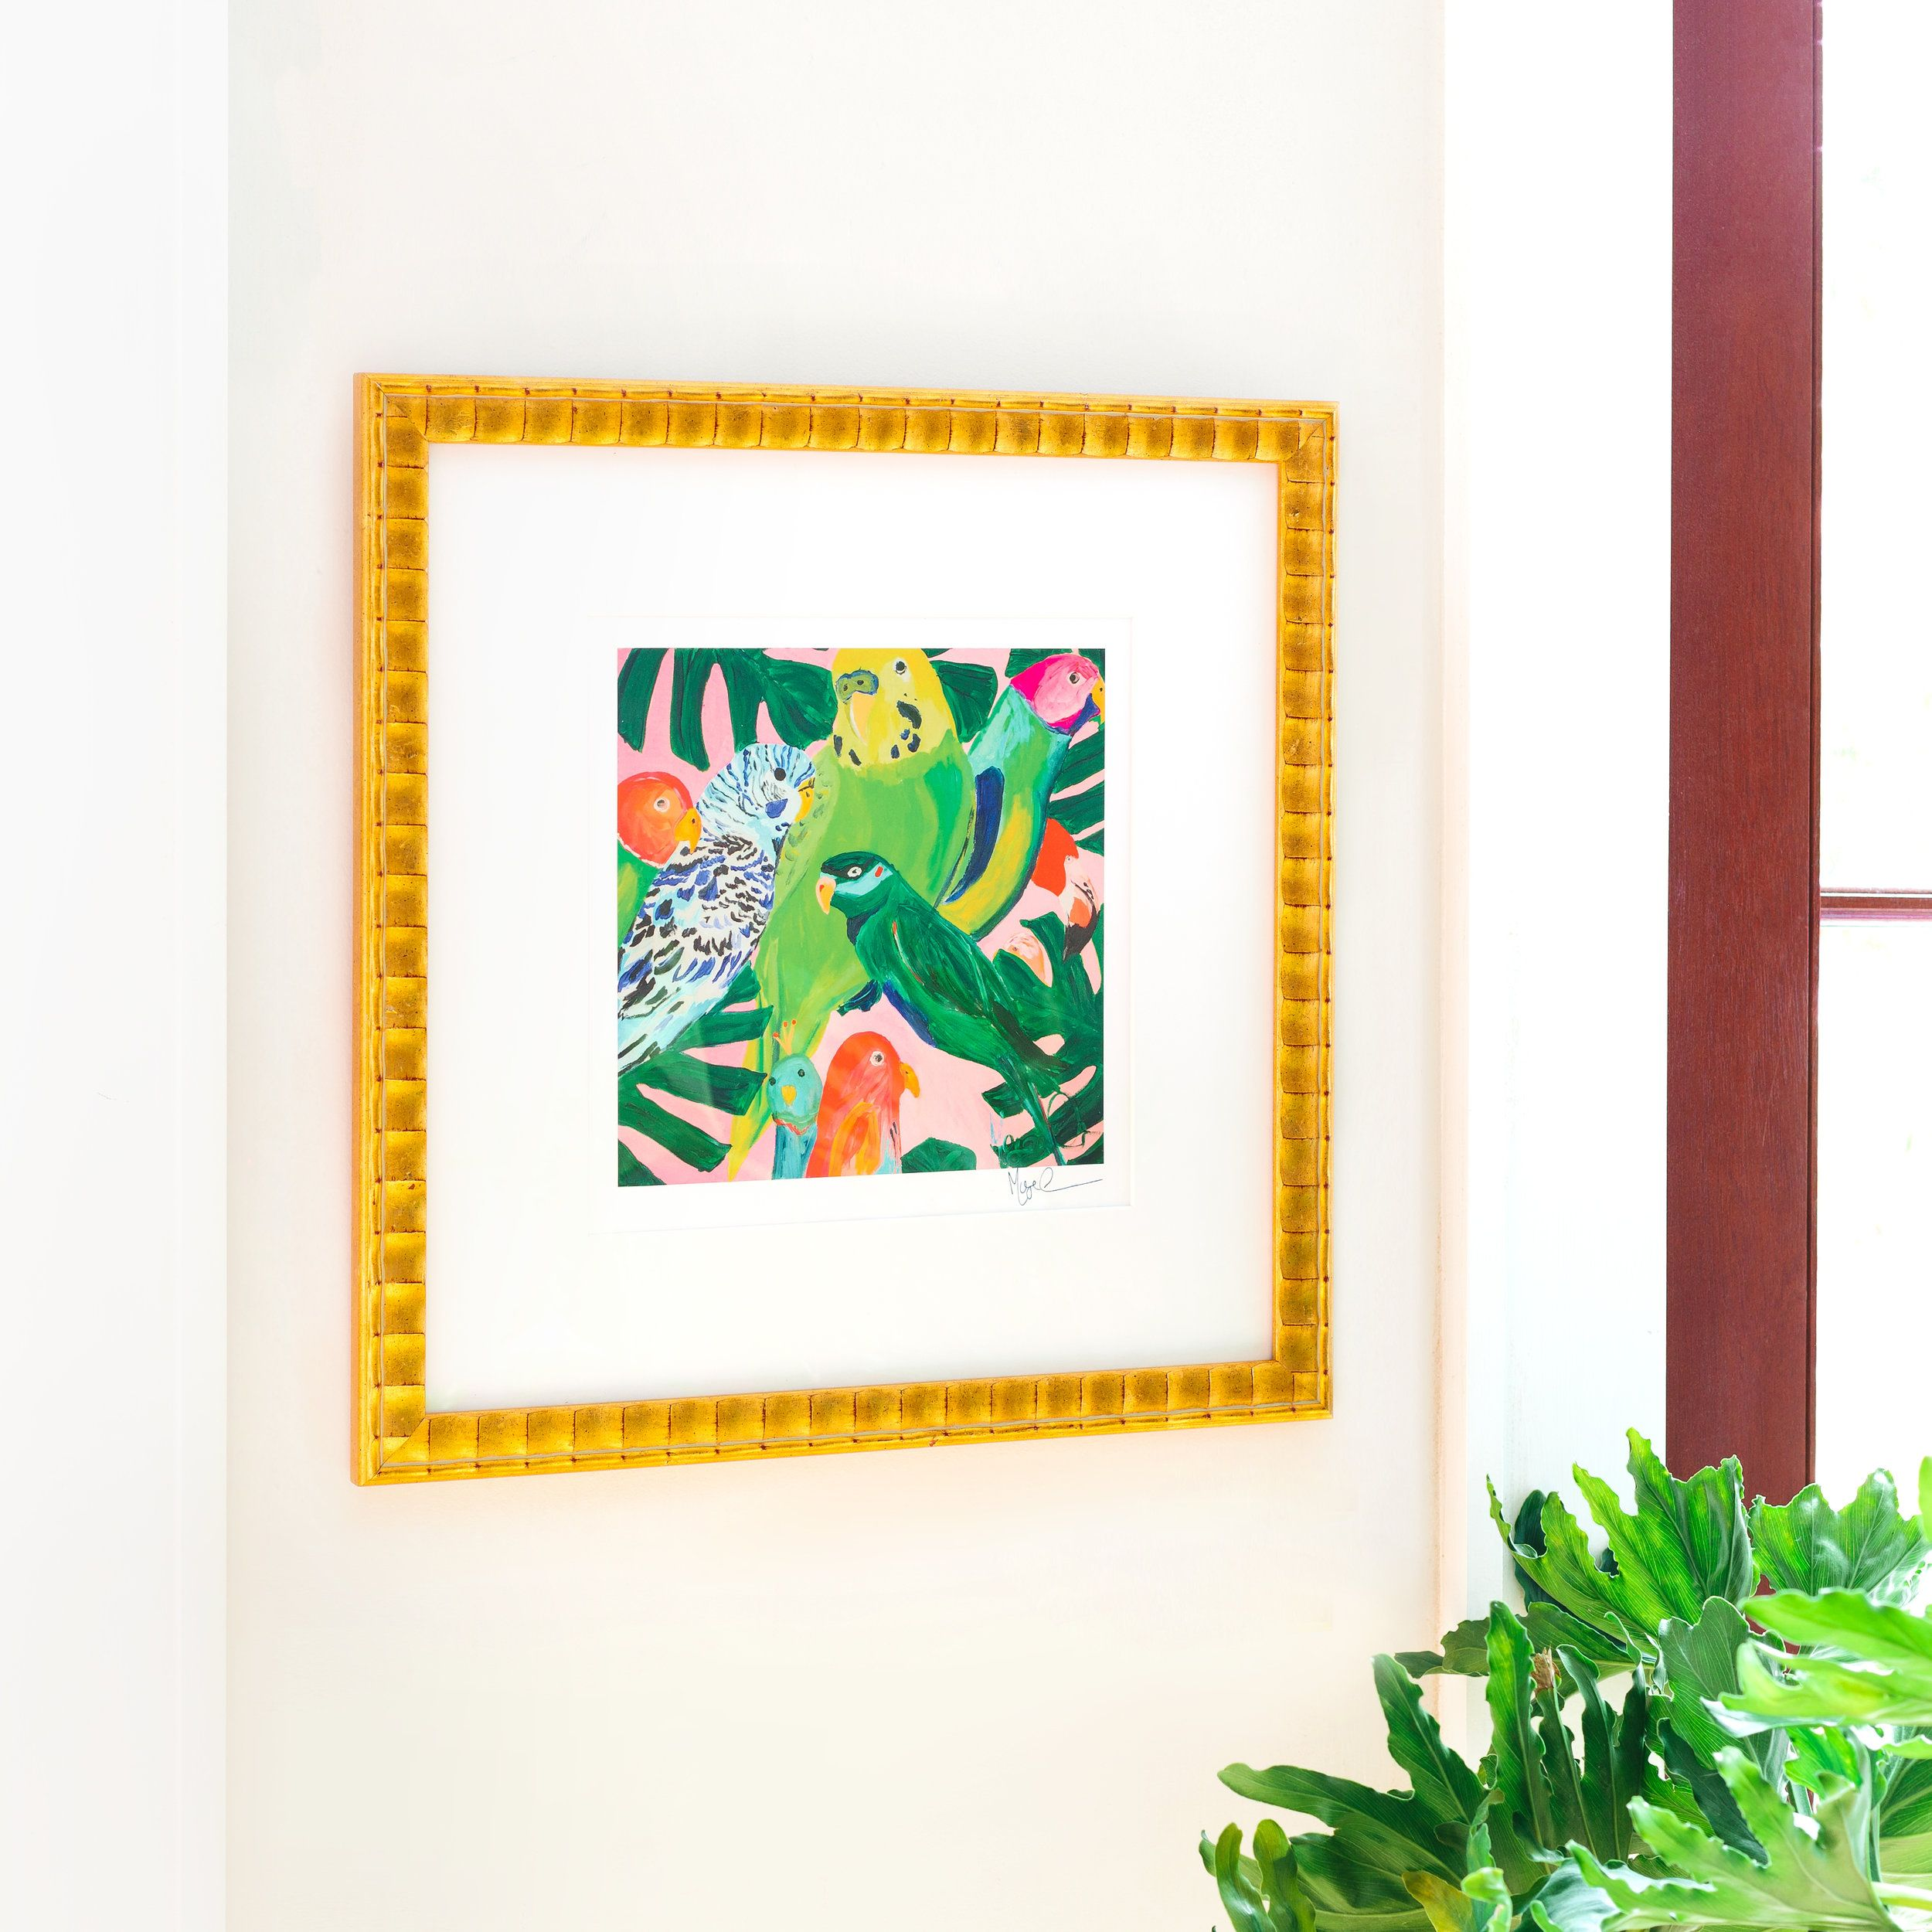 """""""Leaf It to the Birds"""" in our Lafayette frame with a white mat. Lafayette is good for Good for small size, medium size, and large size prints for multiple dimensions."""